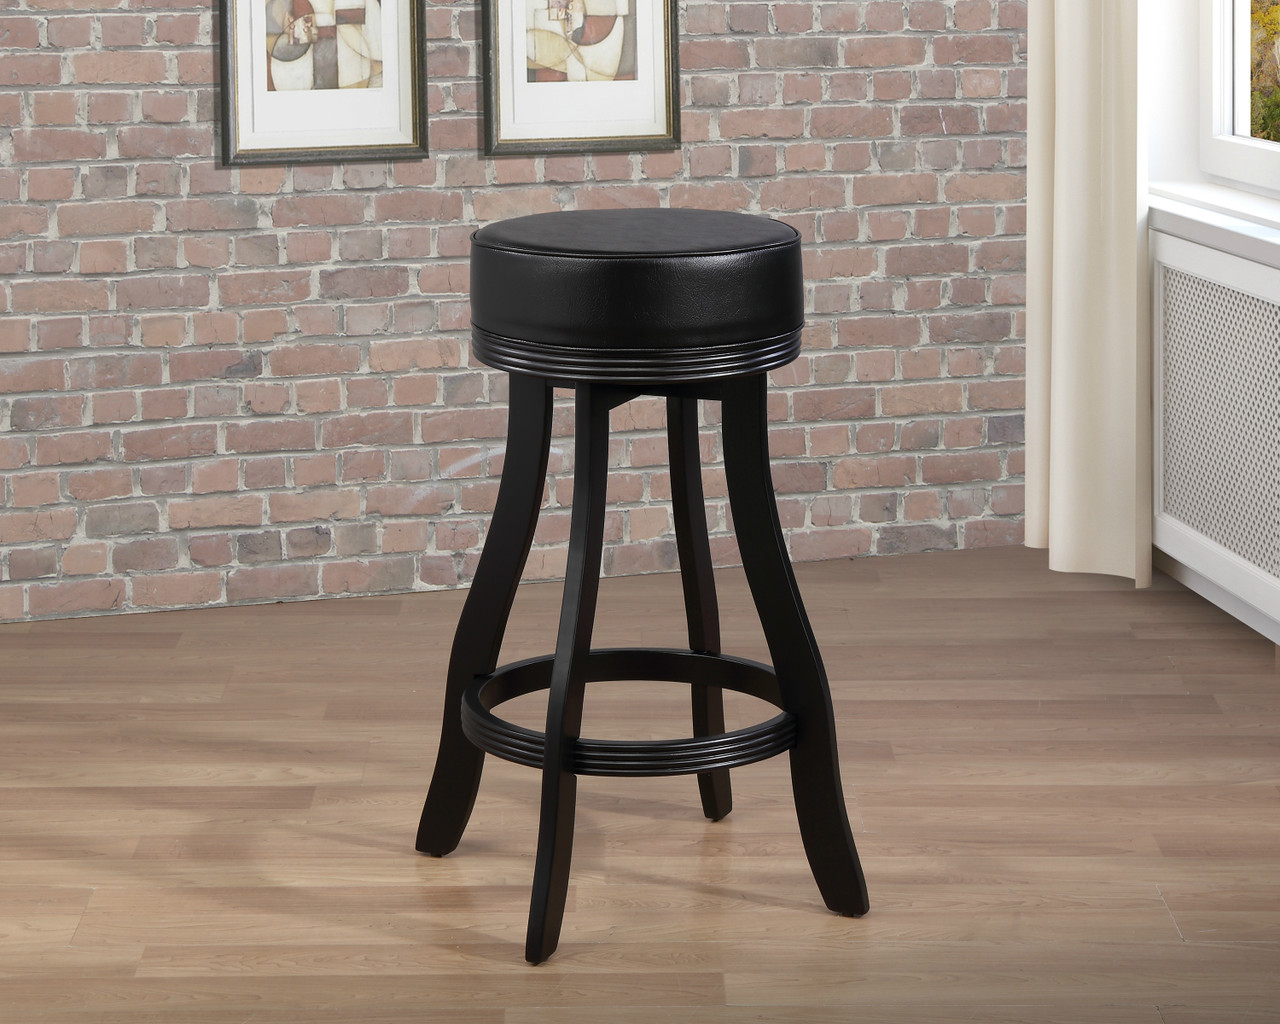 Sensational Designer Stool Black Inzonedesignstudio Interior Chair Design Inzonedesignstudiocom